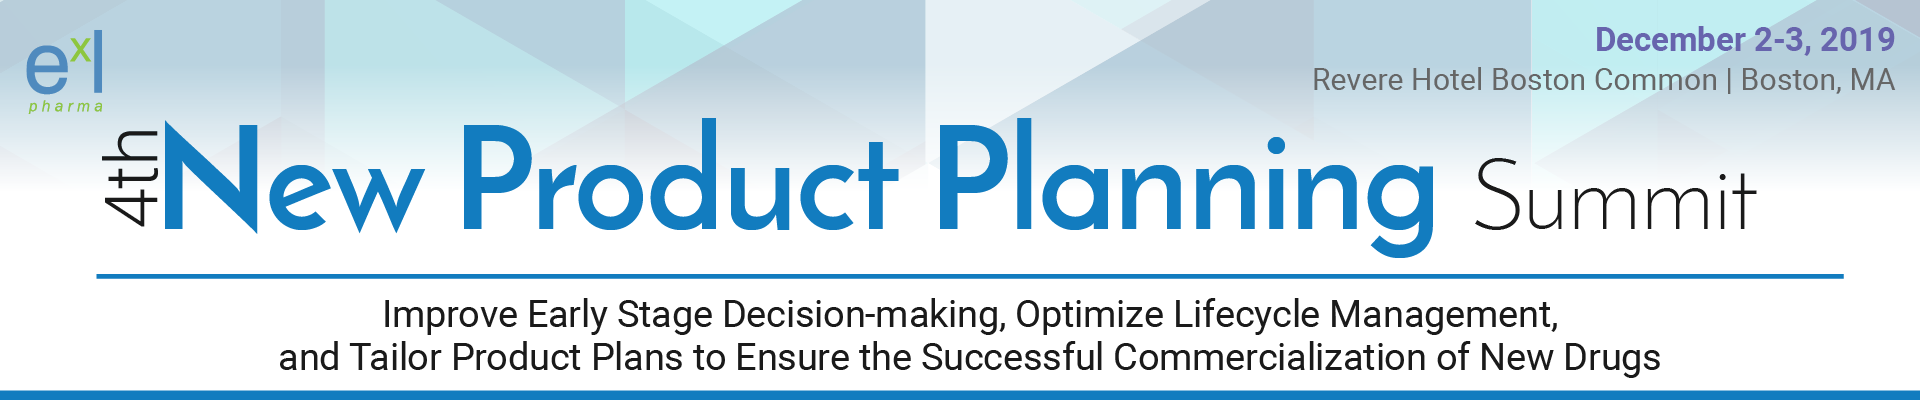 4th New Product Planning